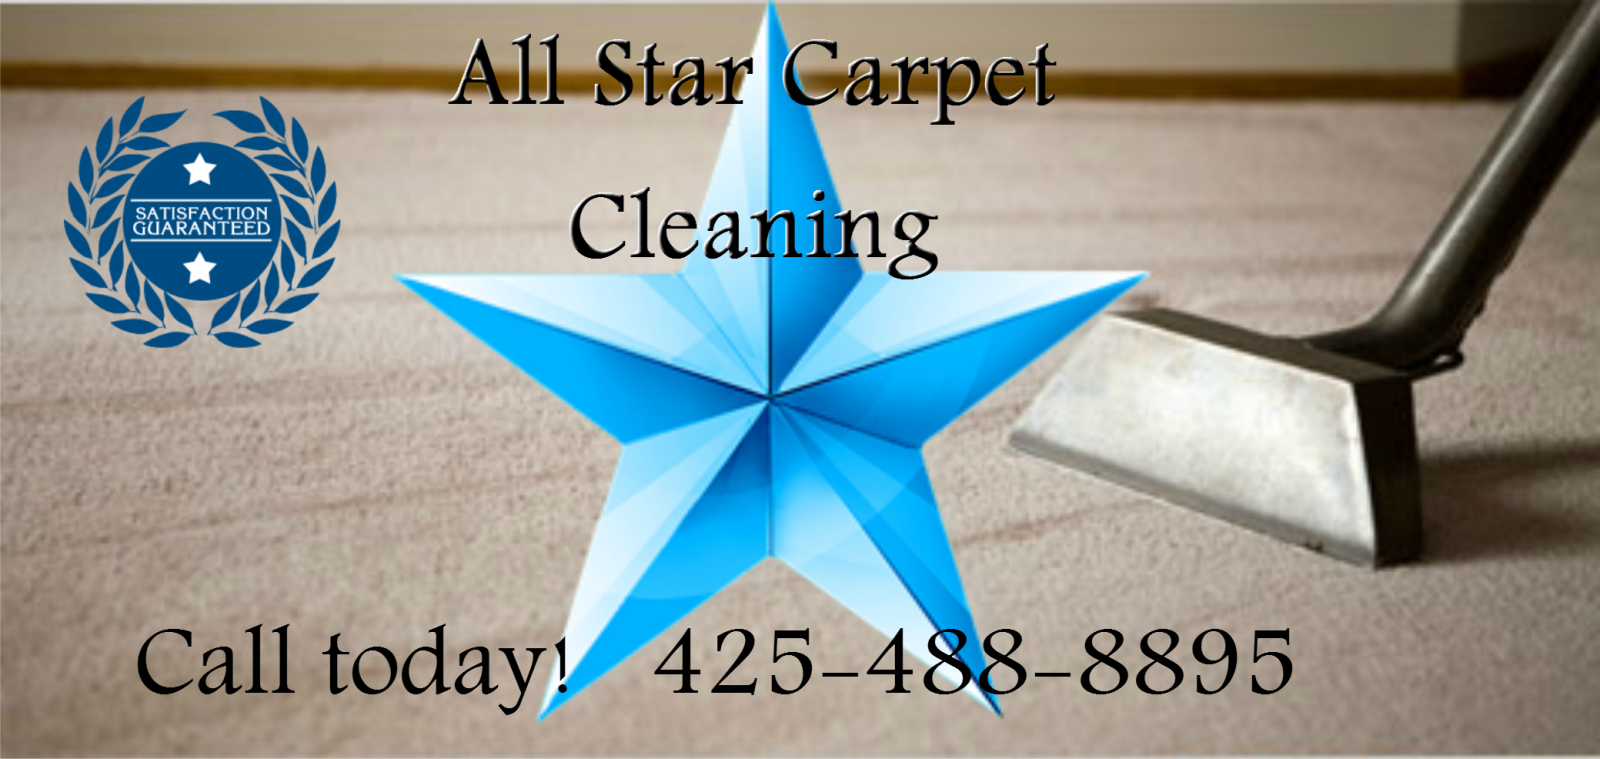 Stories By All Star Carpet Cleaning Contently